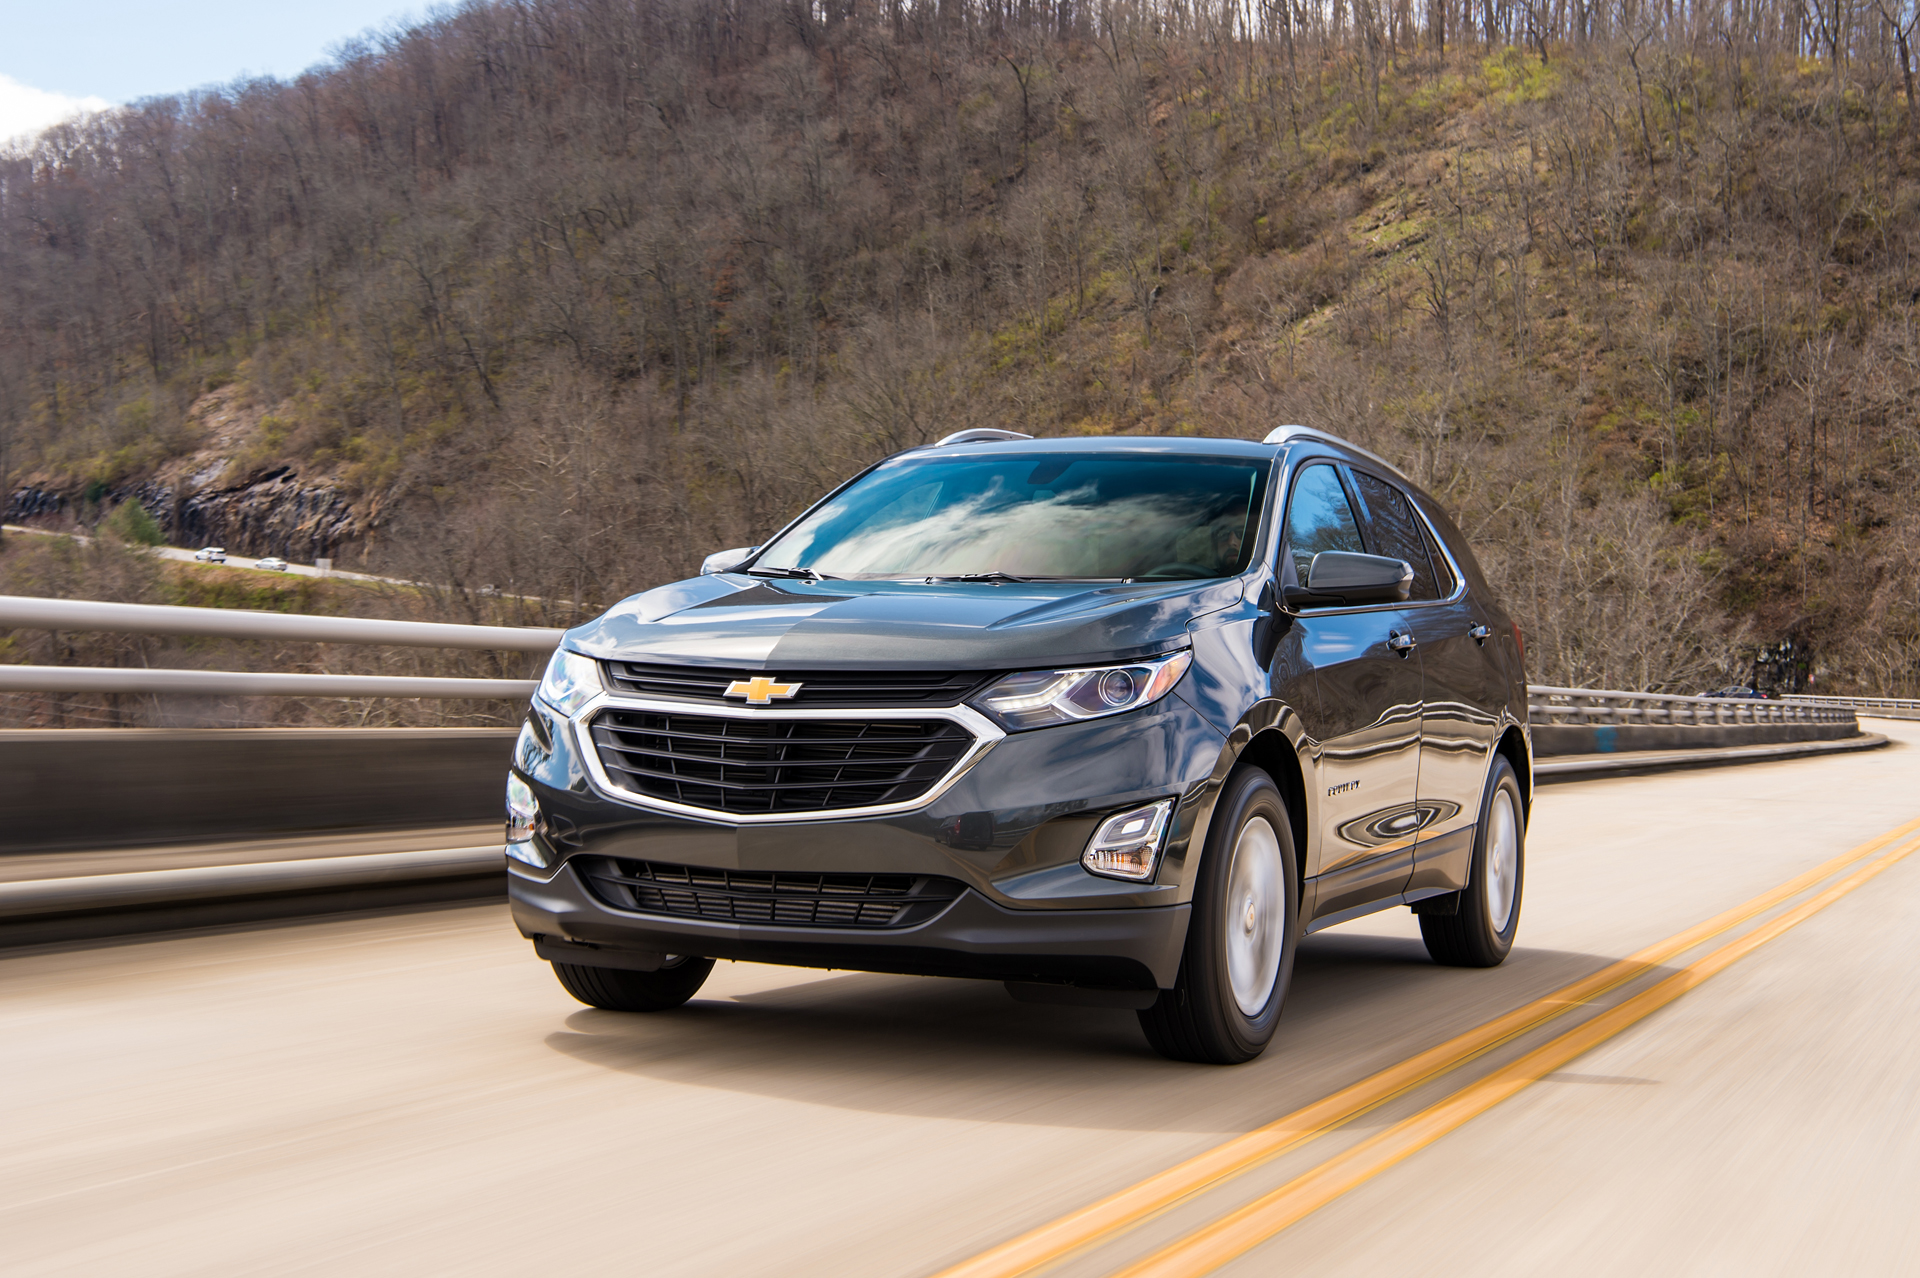 new and used chevrolet equinox chevy prices photos reviews specs the car connection. Black Bedroom Furniture Sets. Home Design Ideas